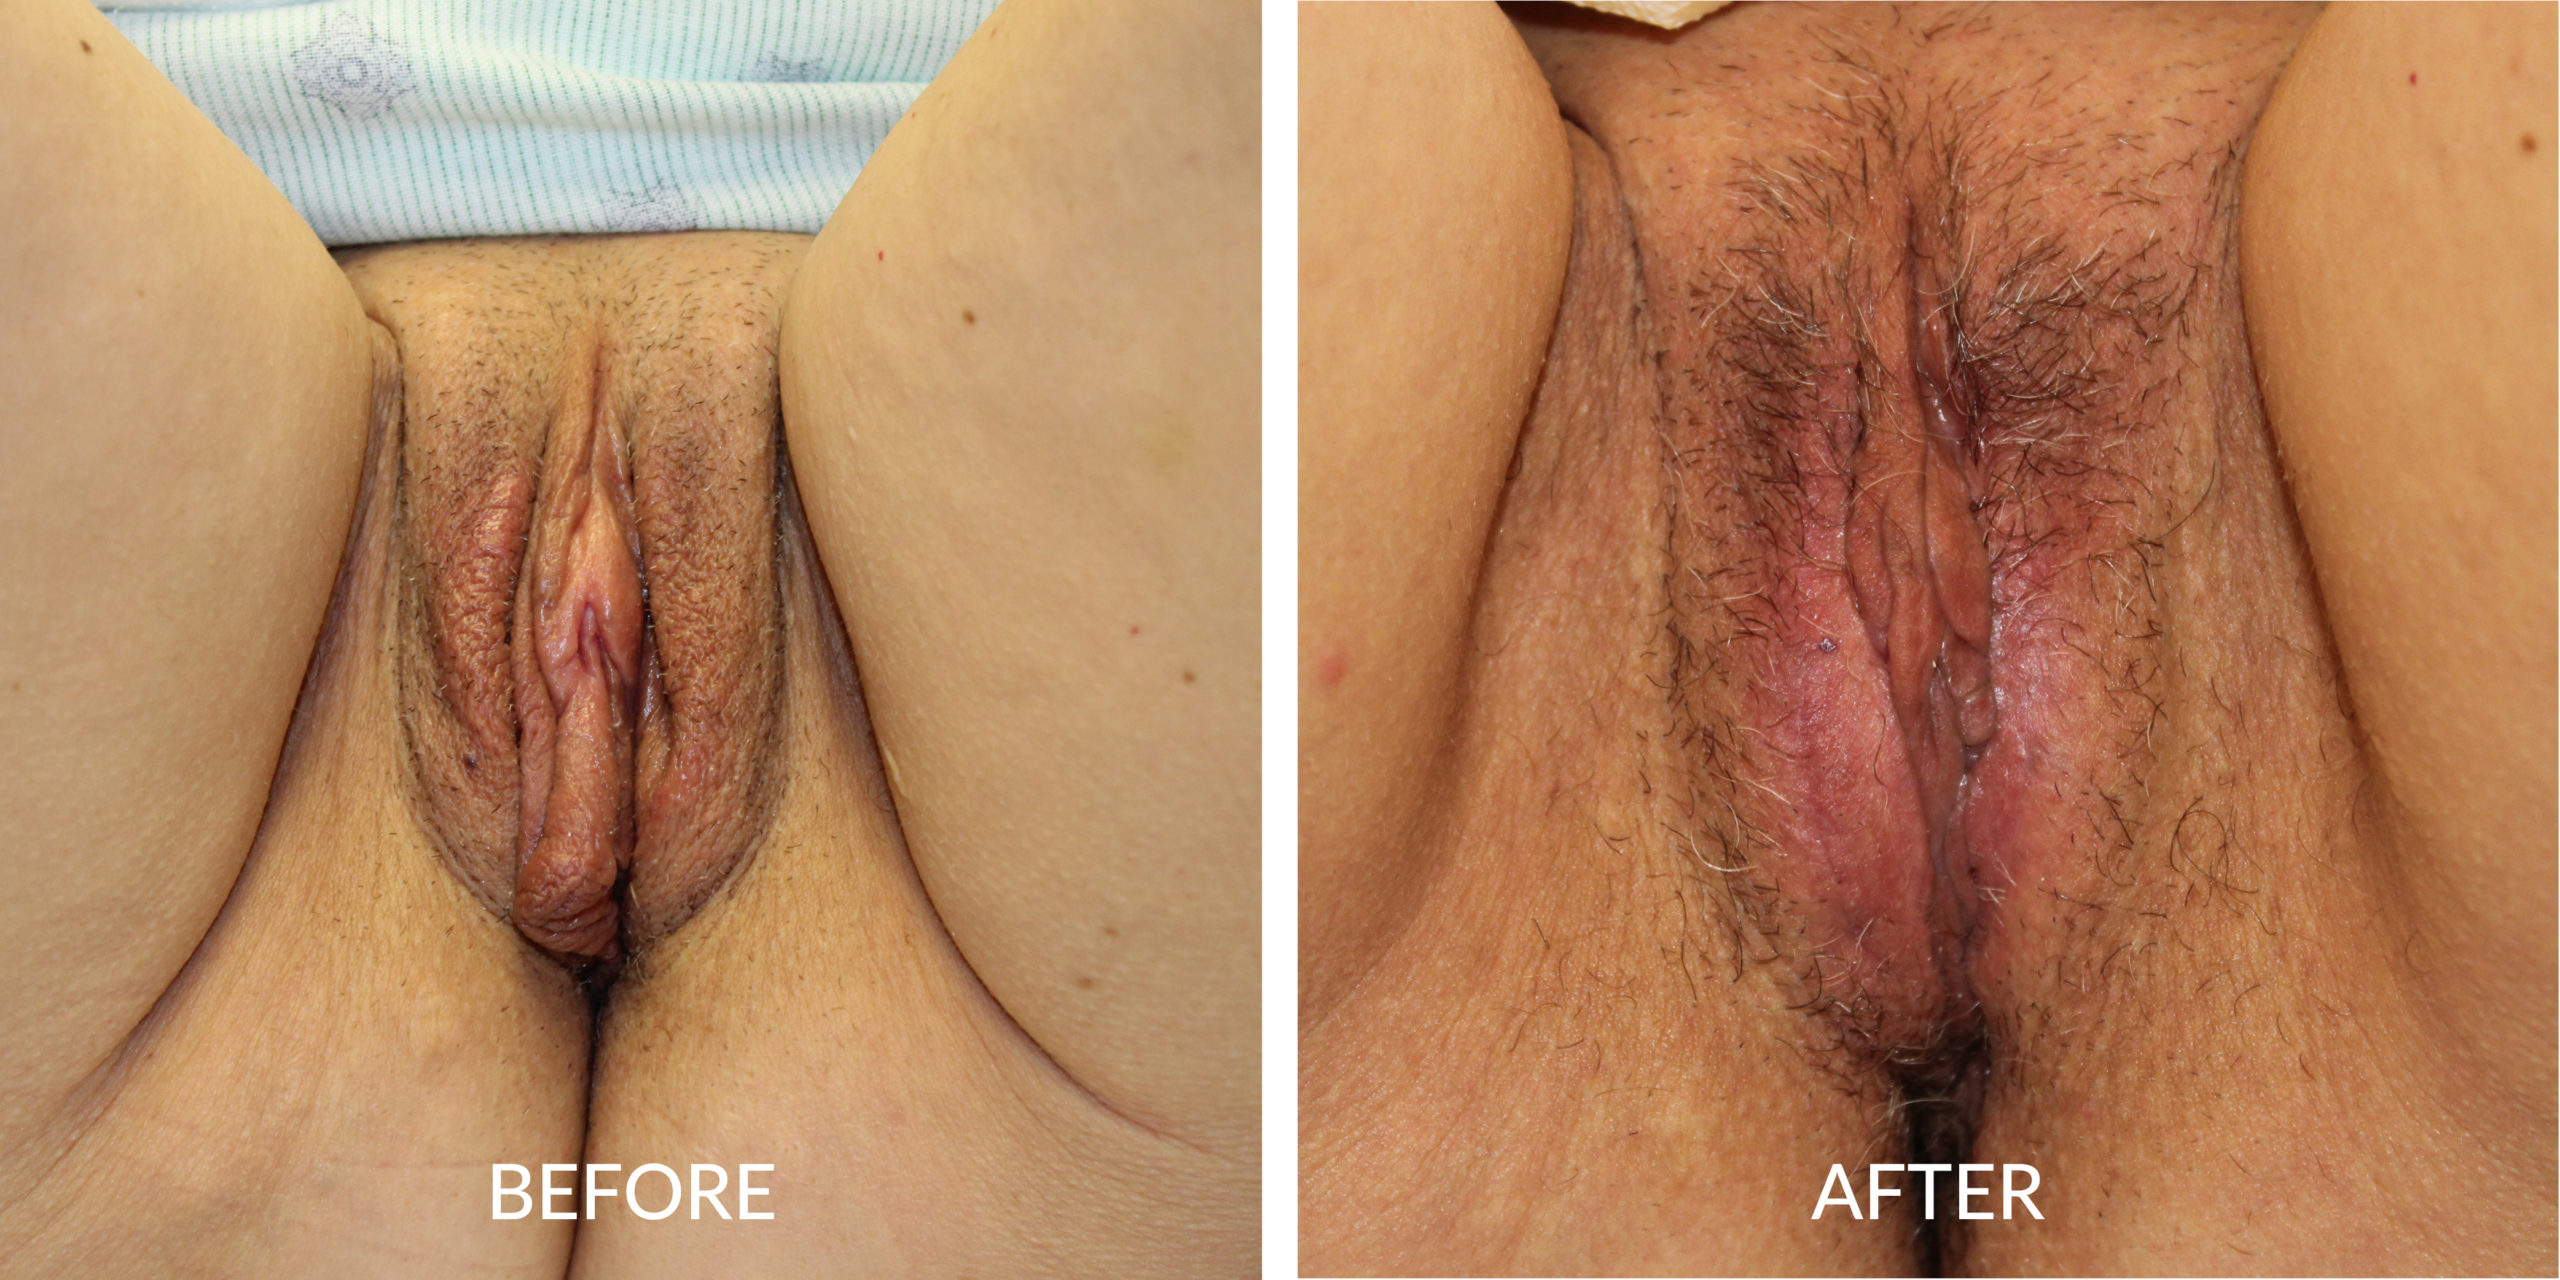 Before & After Labioplasty